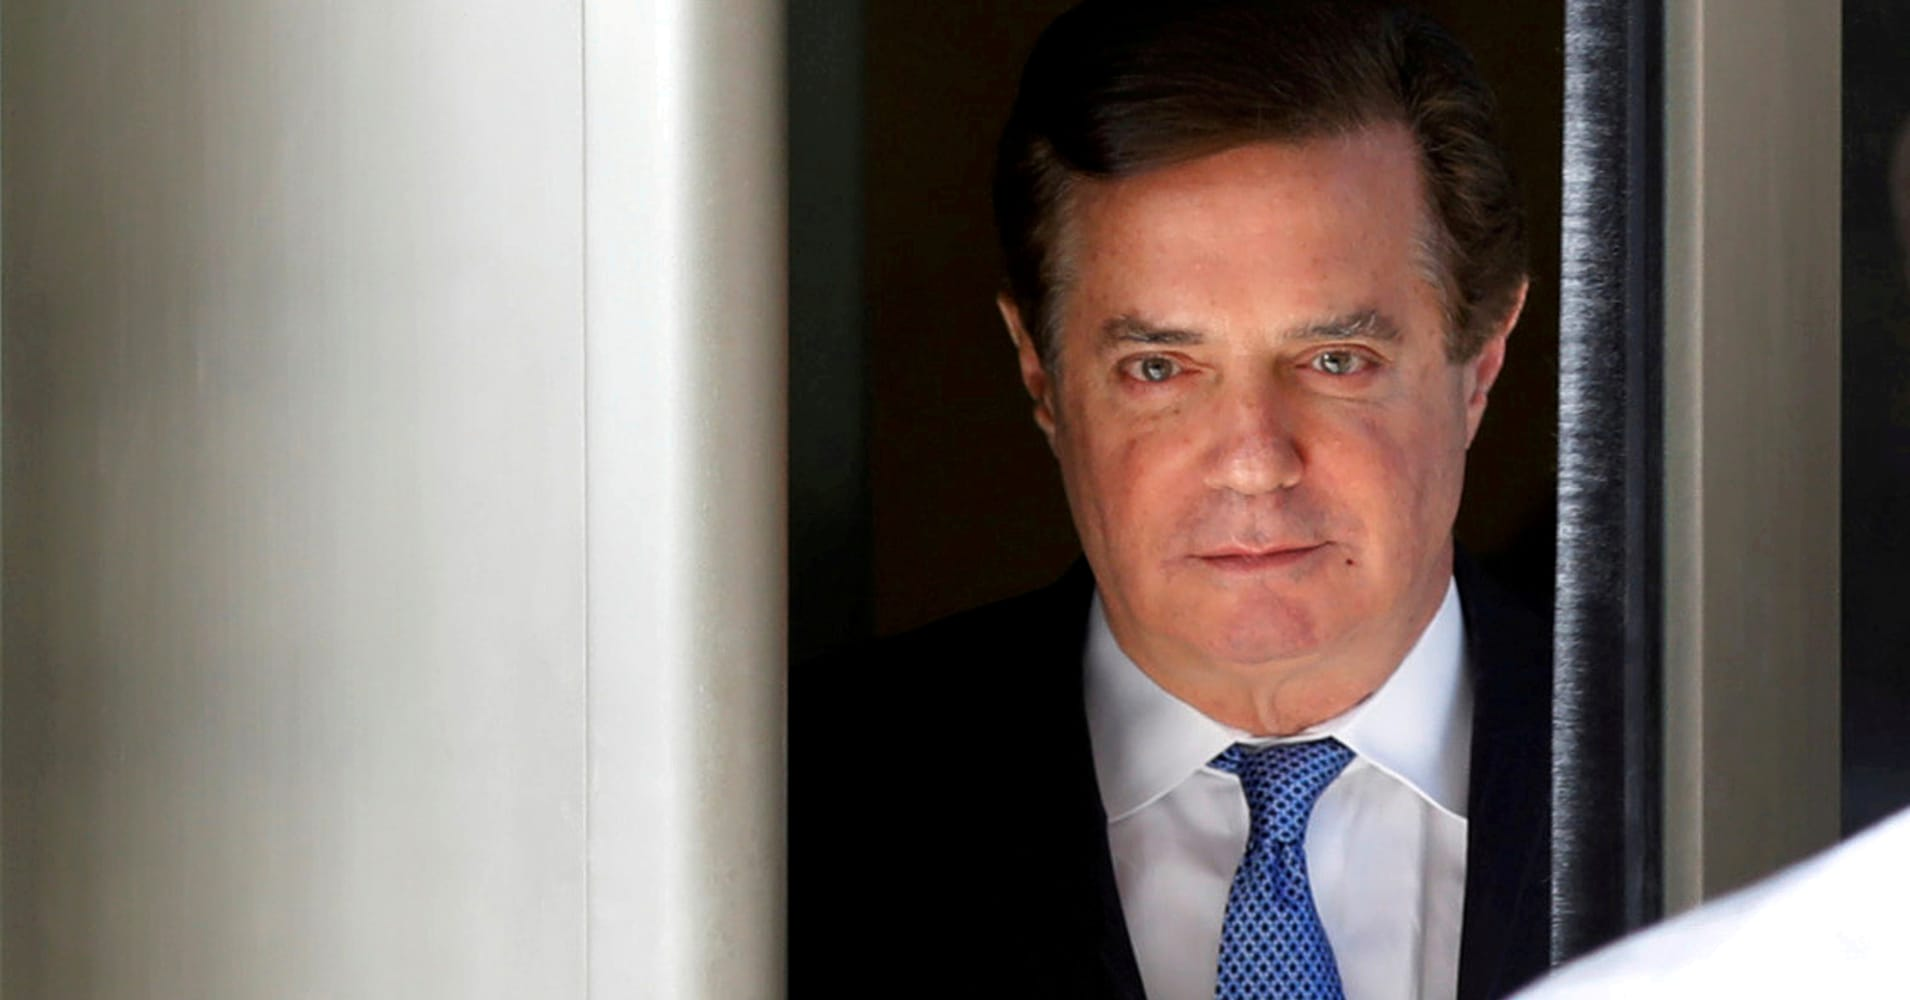 Manafort was in default on Trump Tower condo when he forfeited it in plea — now bank wants a piece